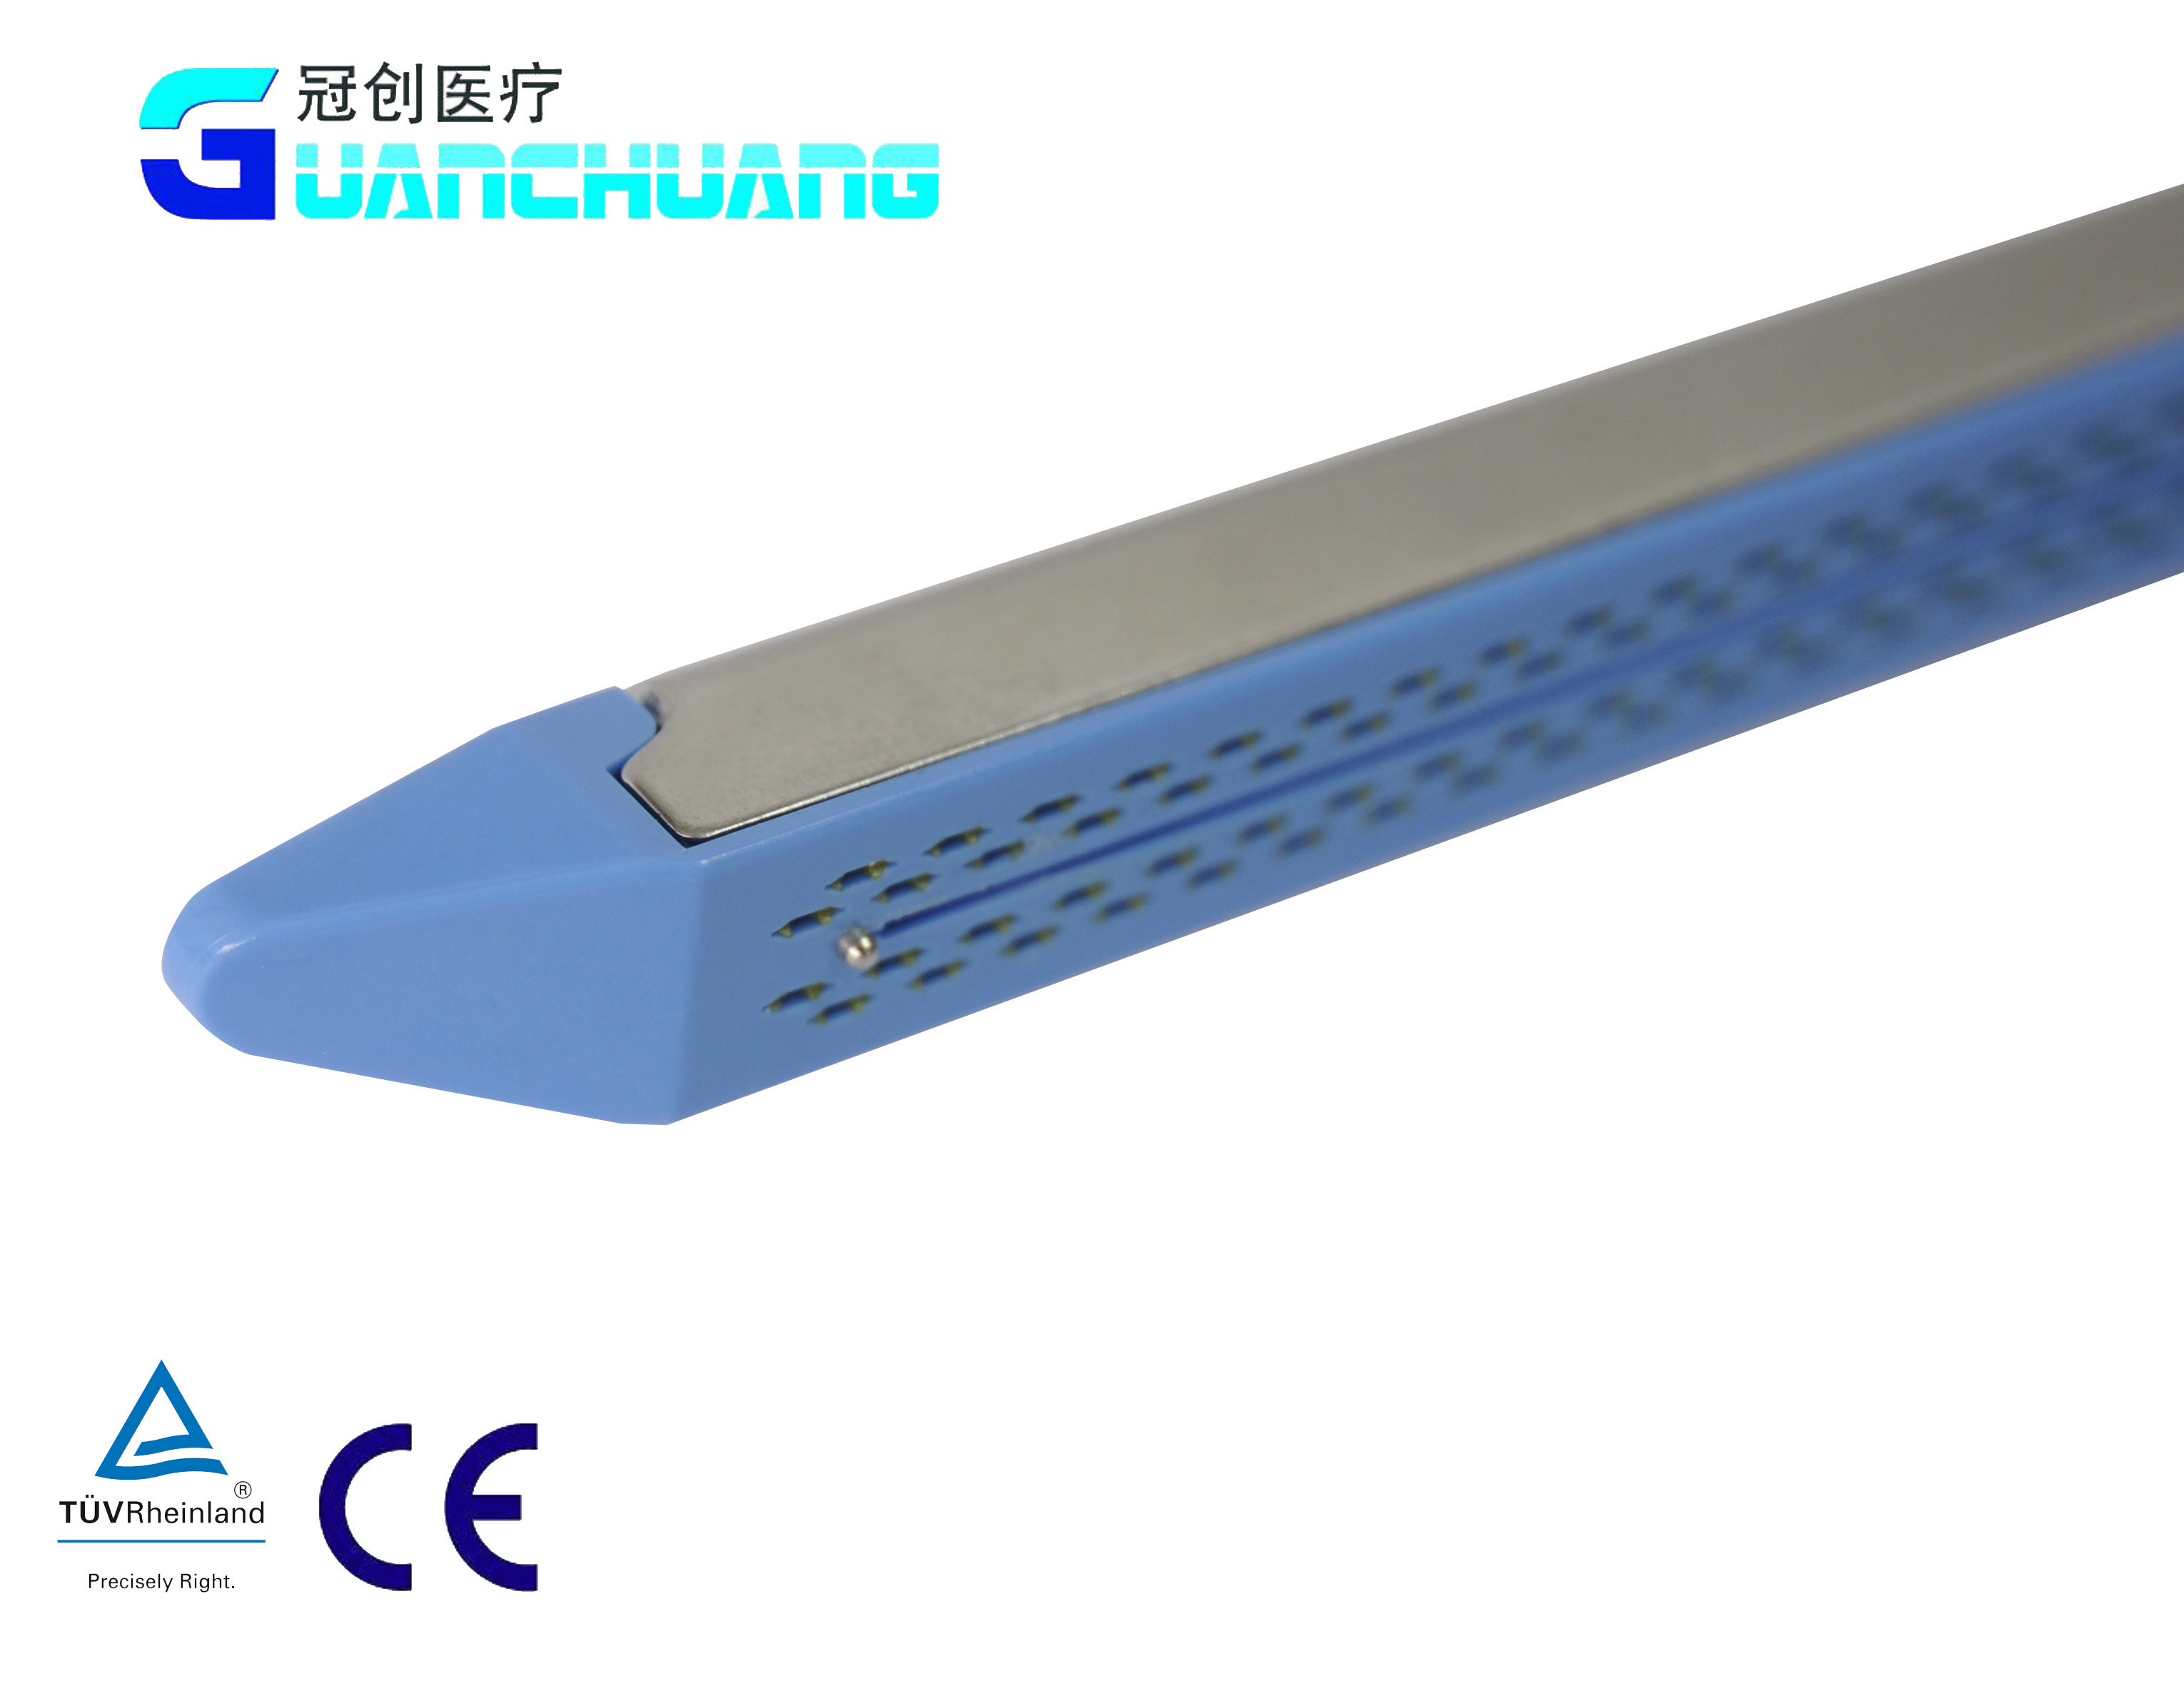 Reload for Disposable Linear Cutter Stapler